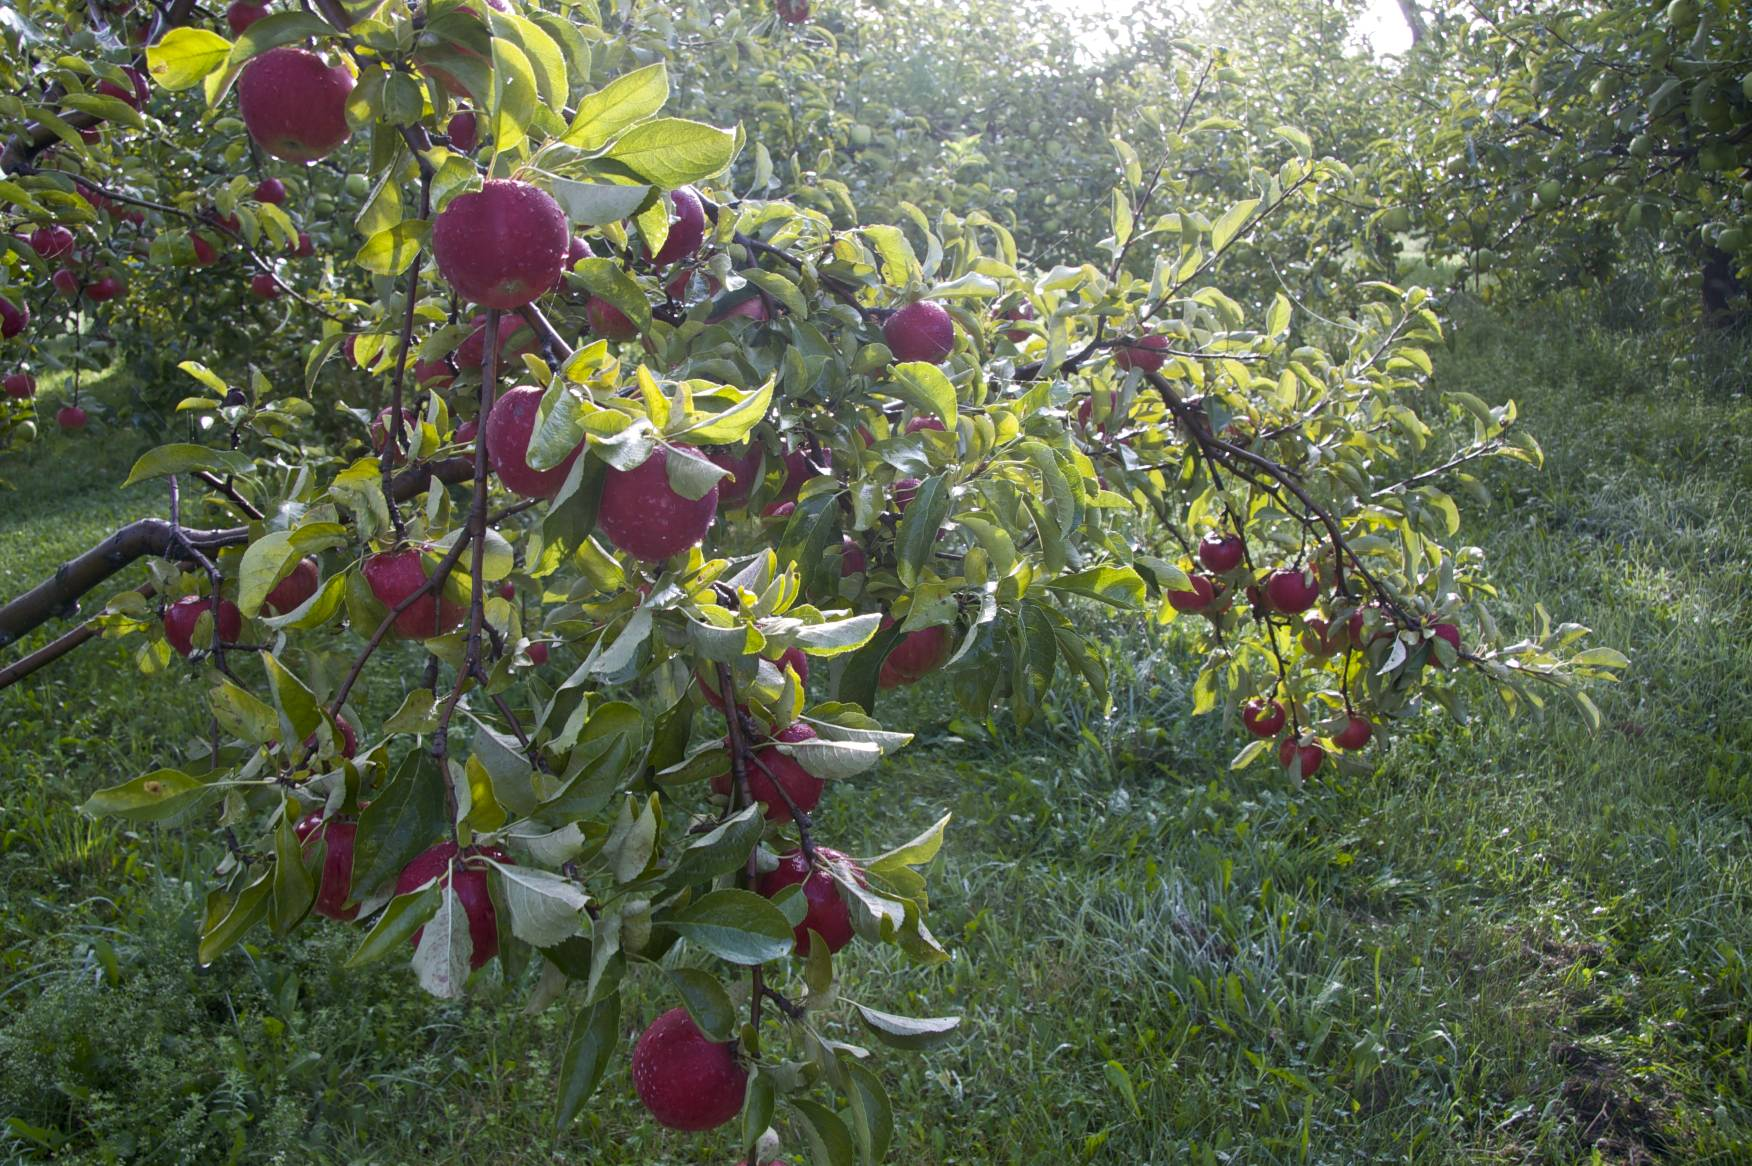 Danby orchard photo by Tucker.